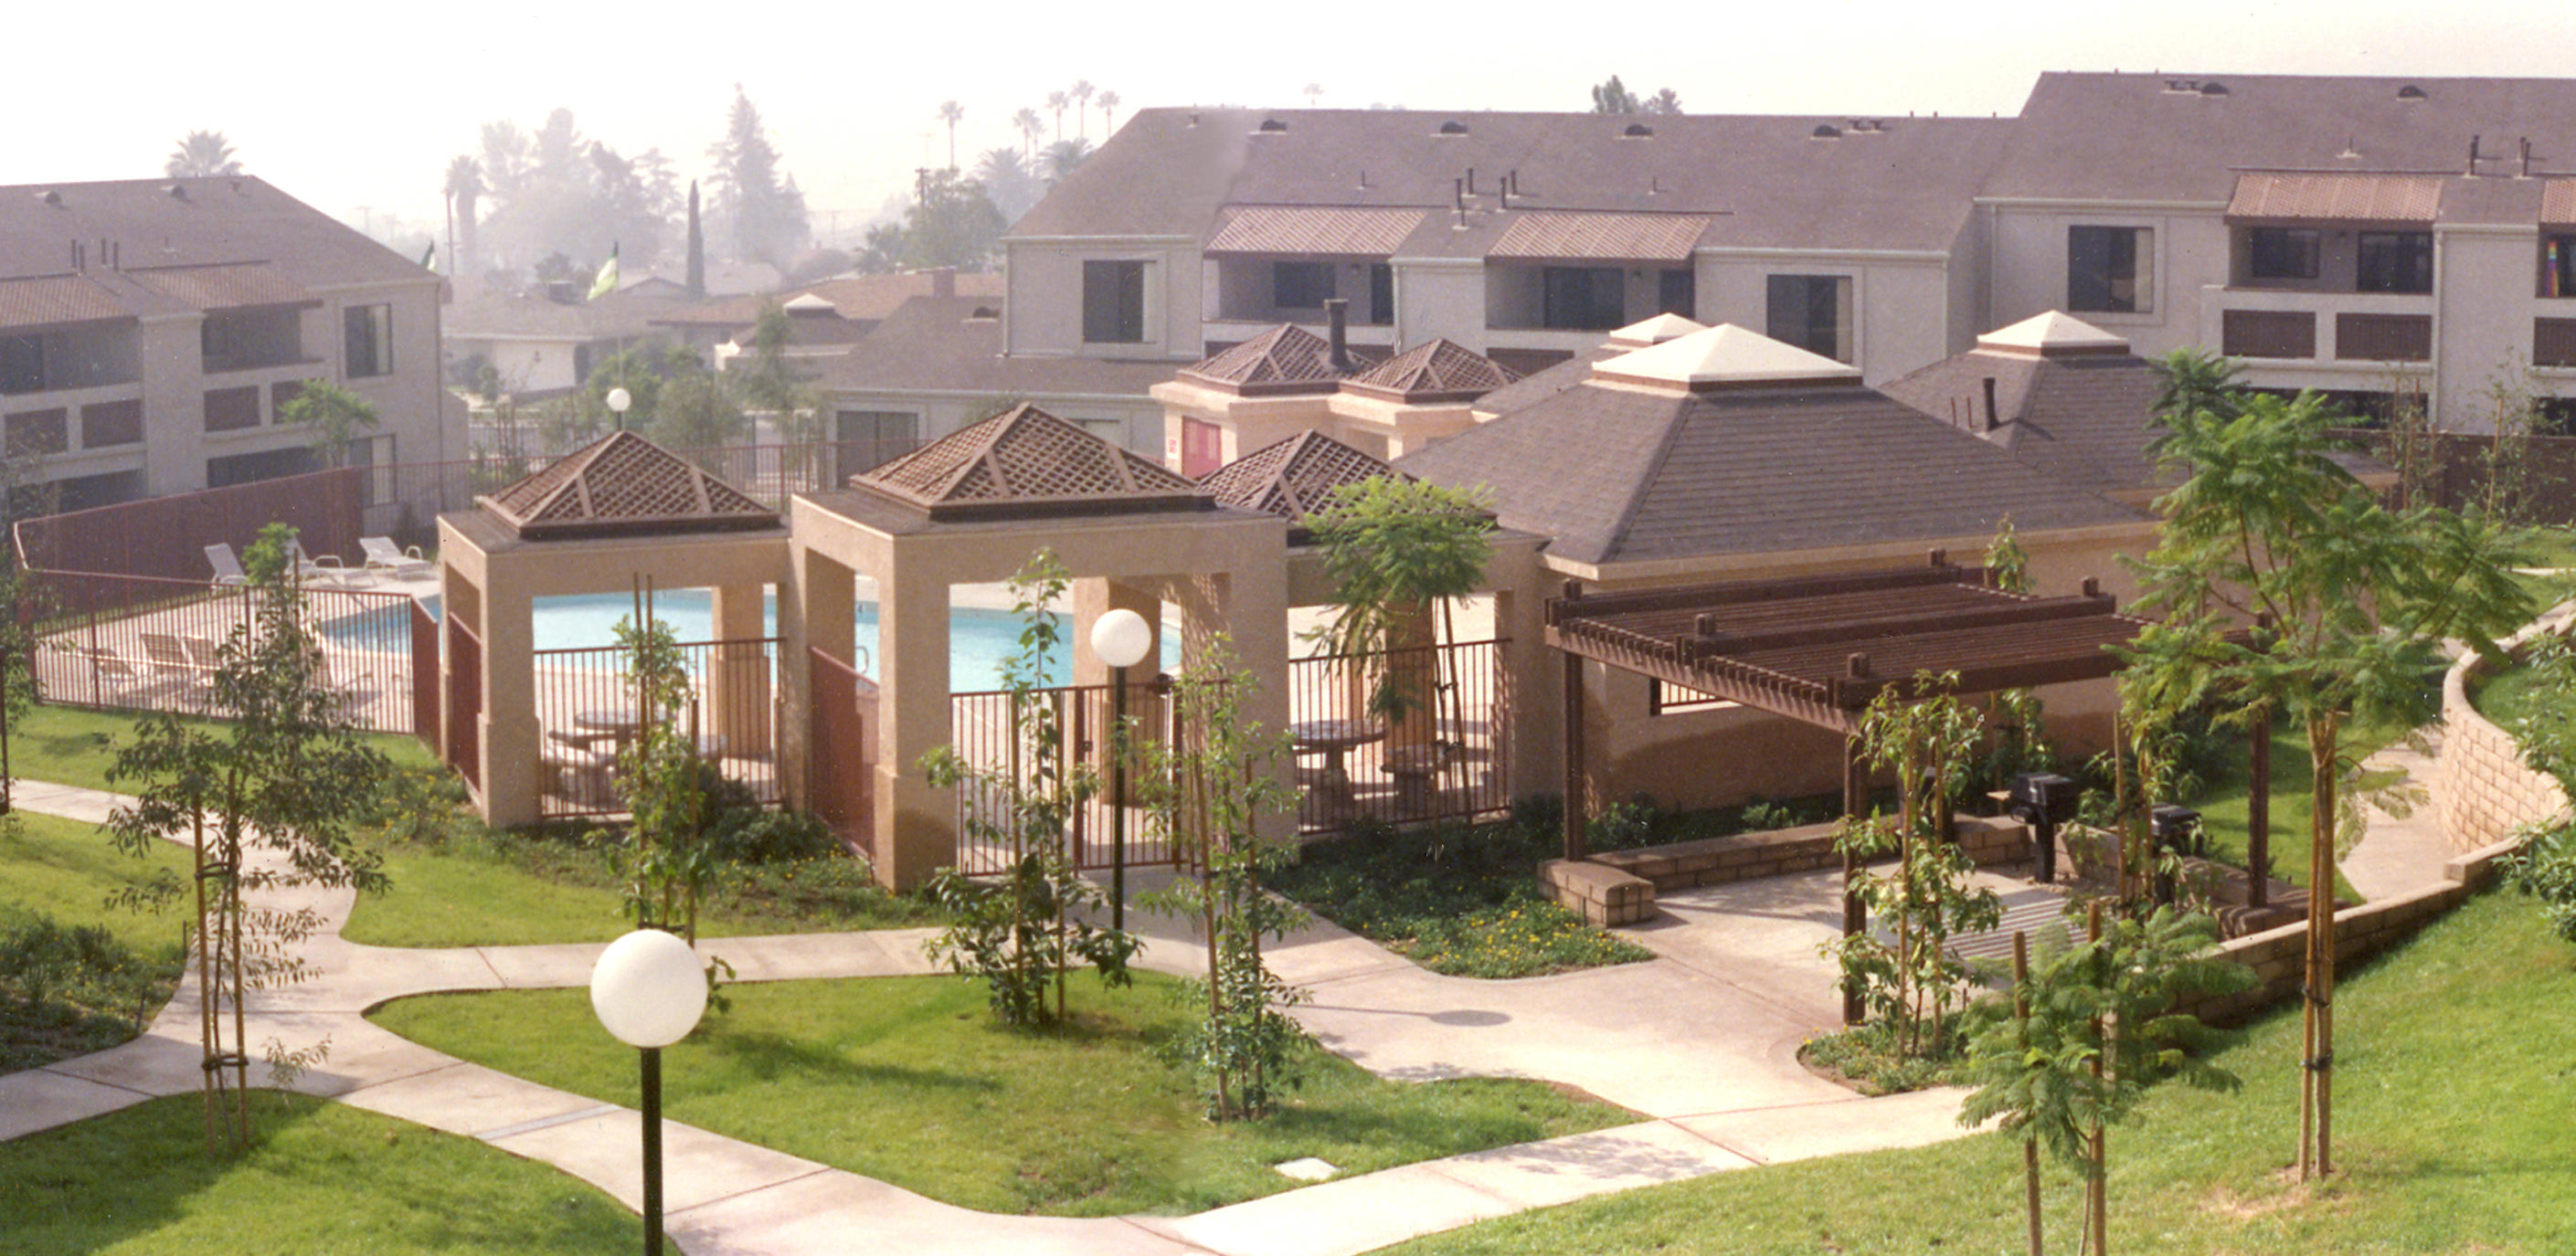 Highland Meadows Apartments image 0